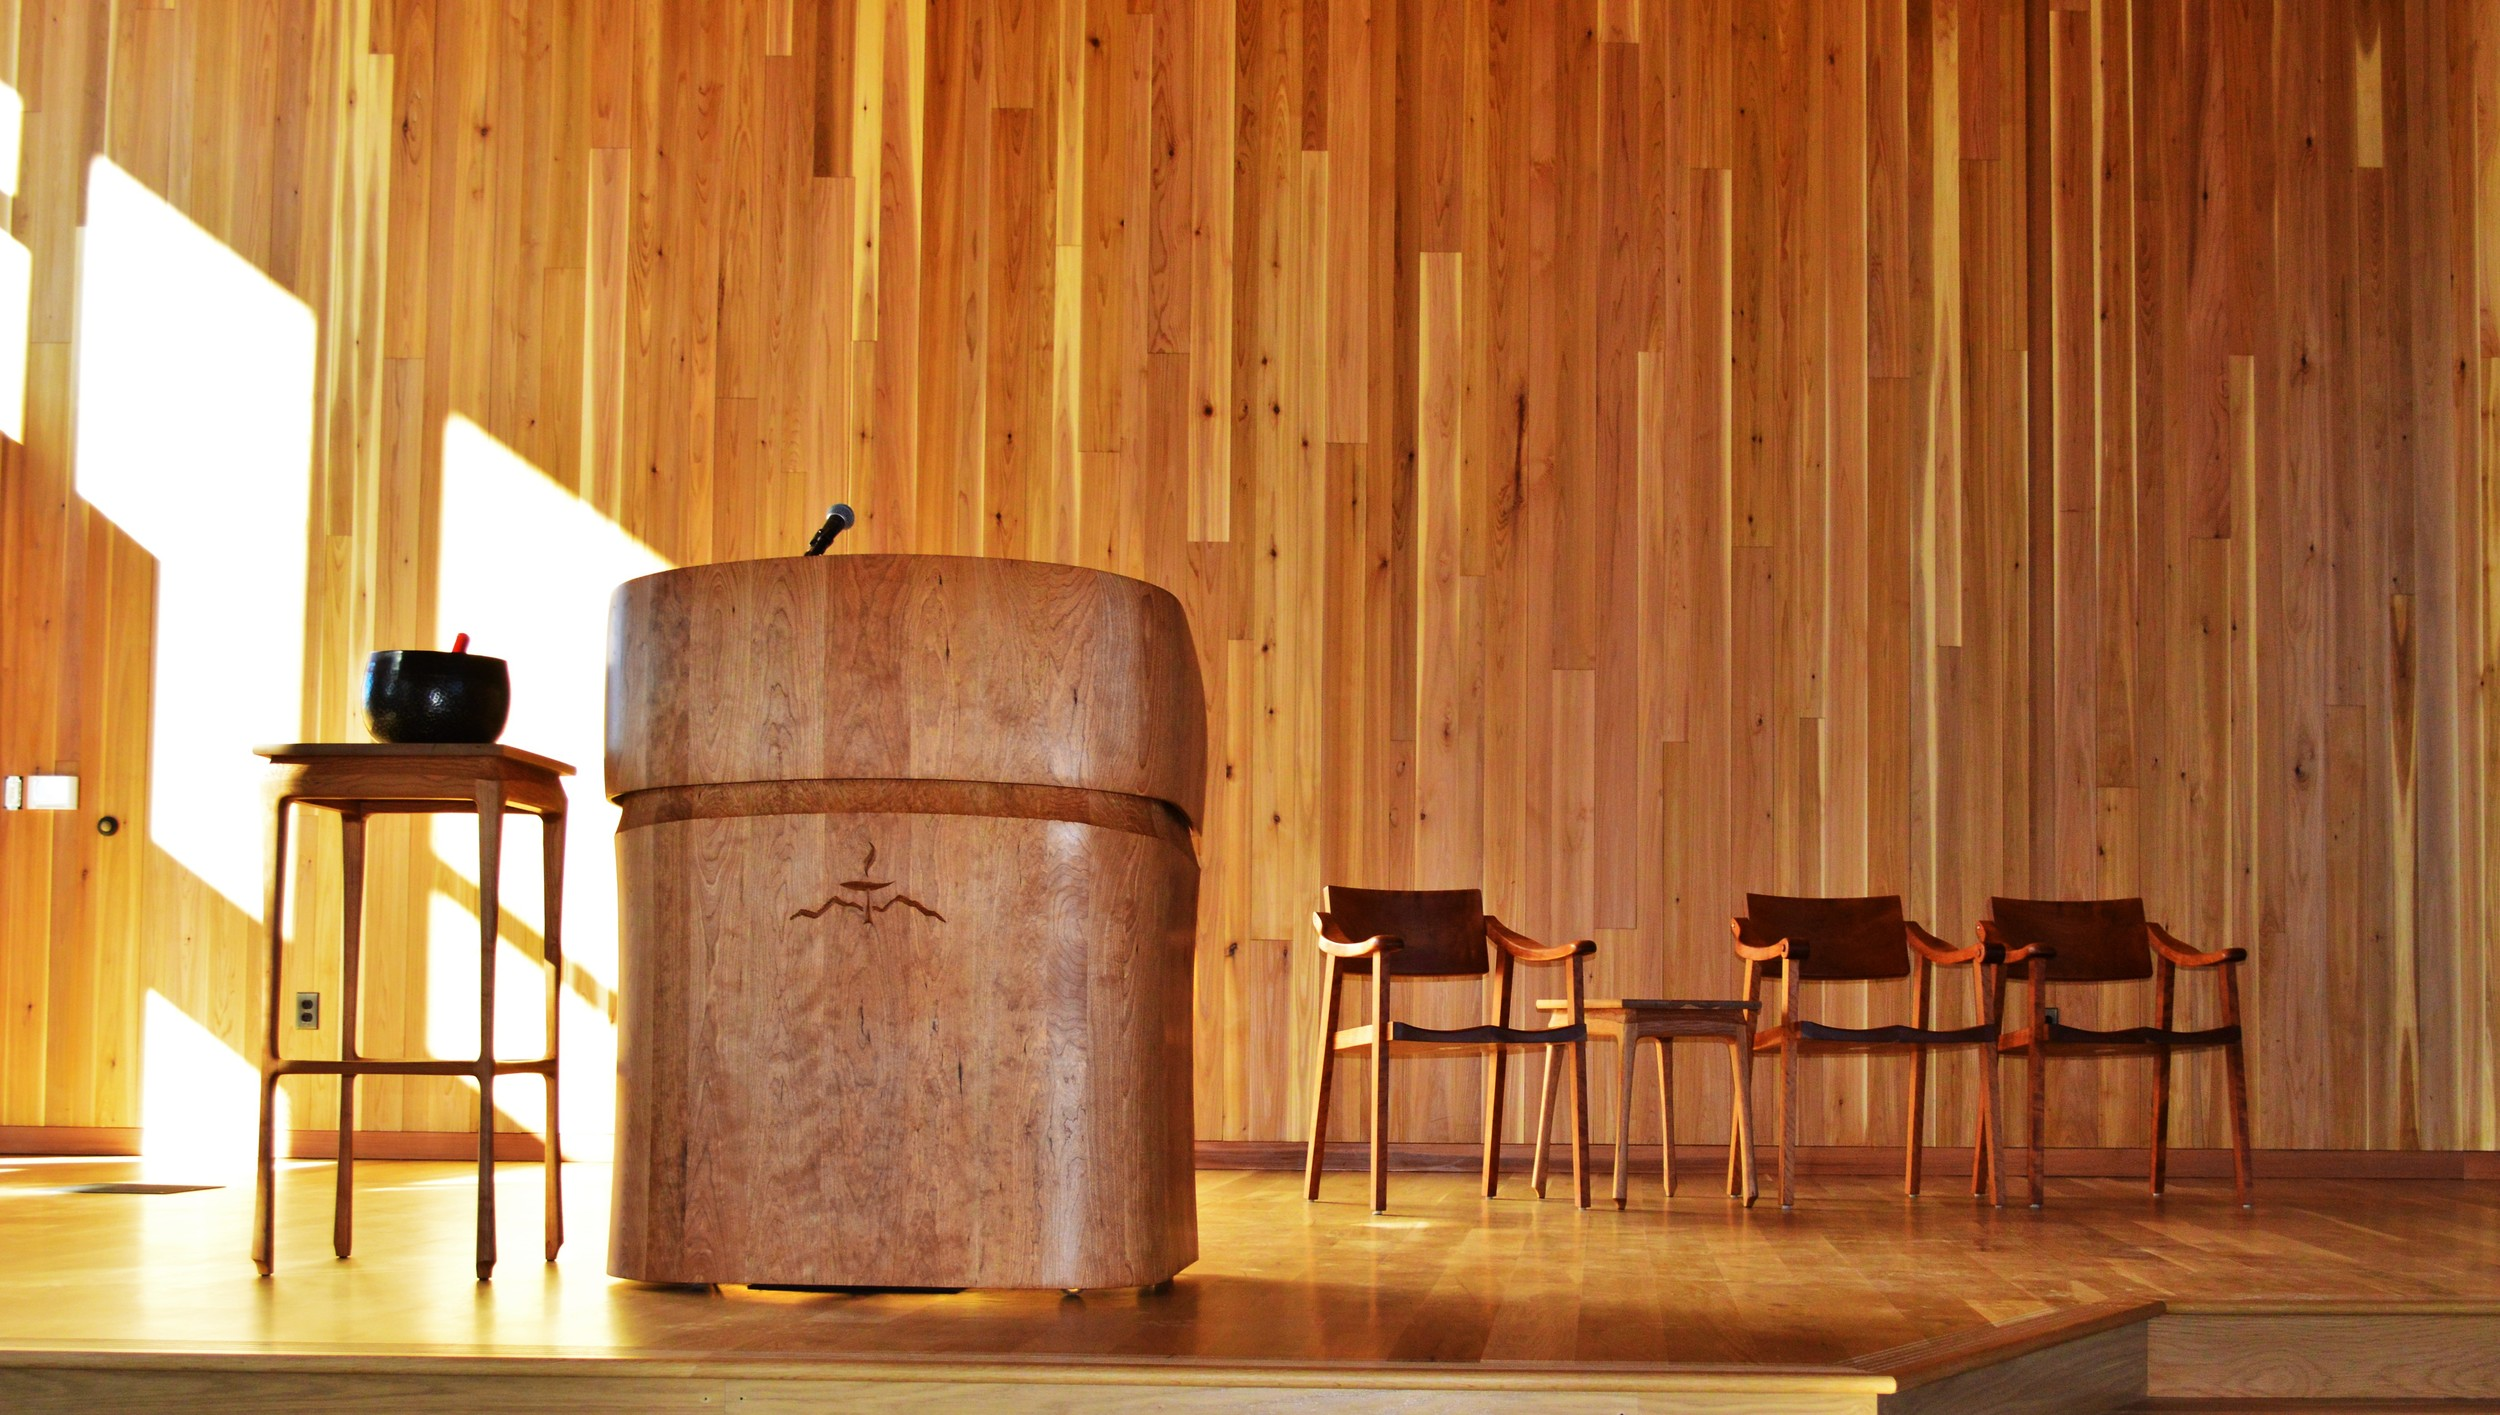 Unitarian Universalist Stage furniture, by Will Nash, 2015